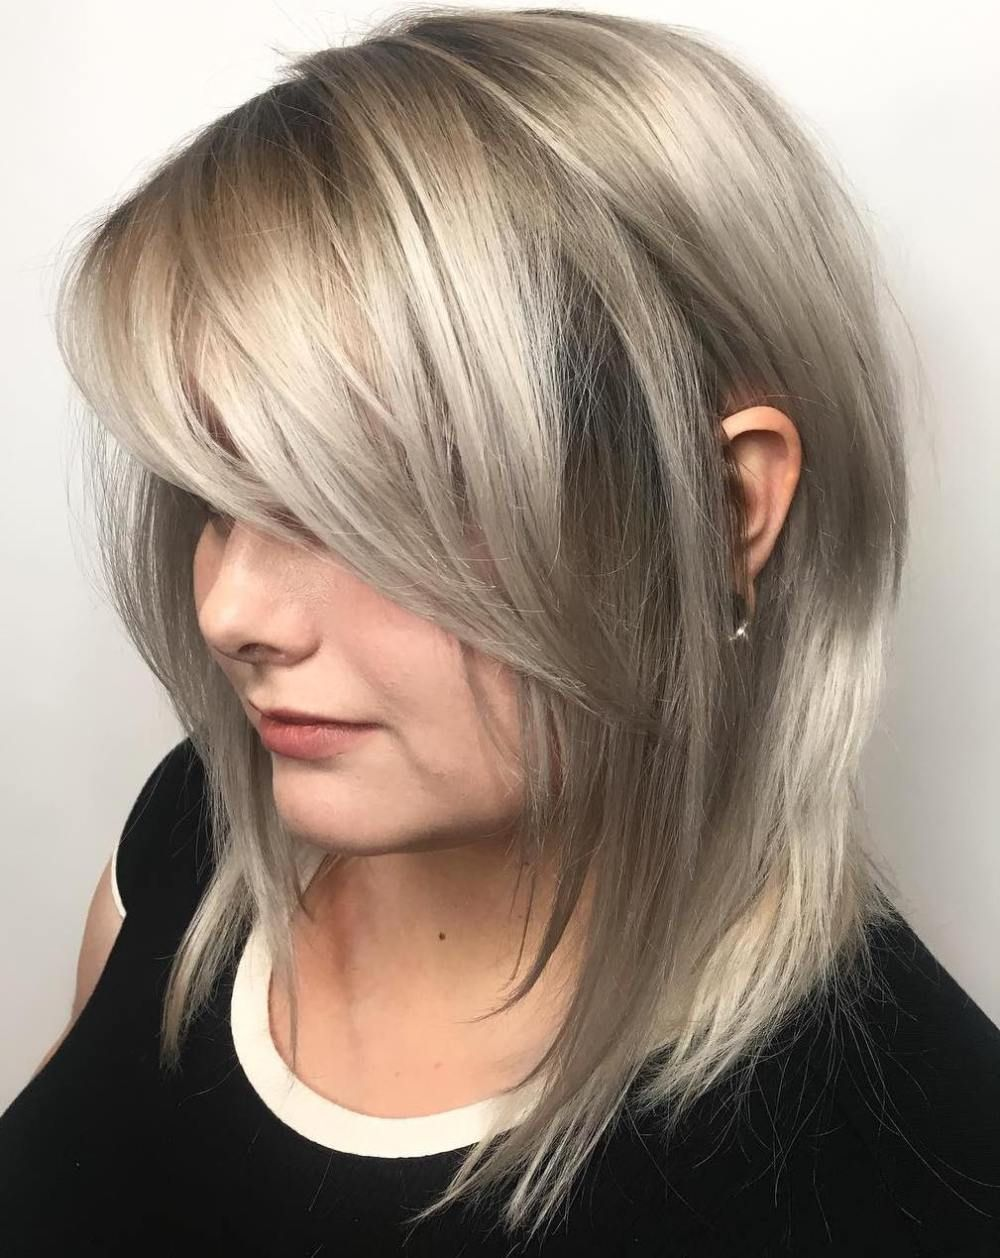 Long Bangs and Textured Ends